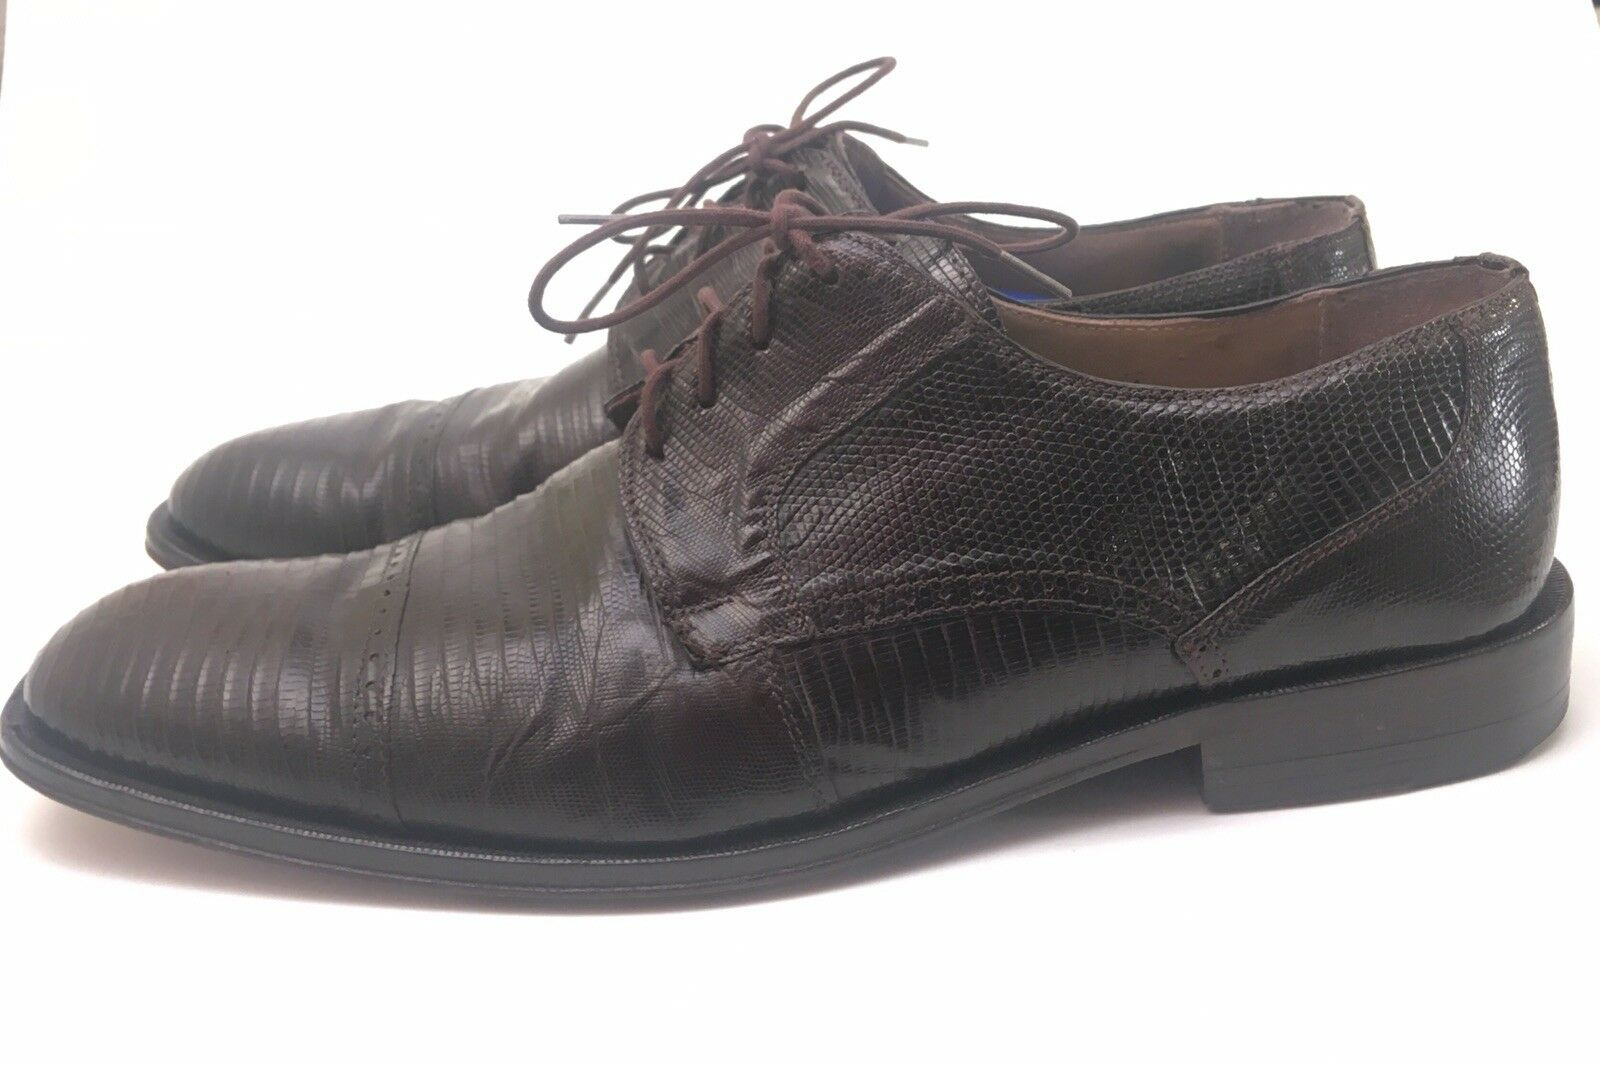 David Eden Men Leather braun Lizard Oxford schuhe Größe 11